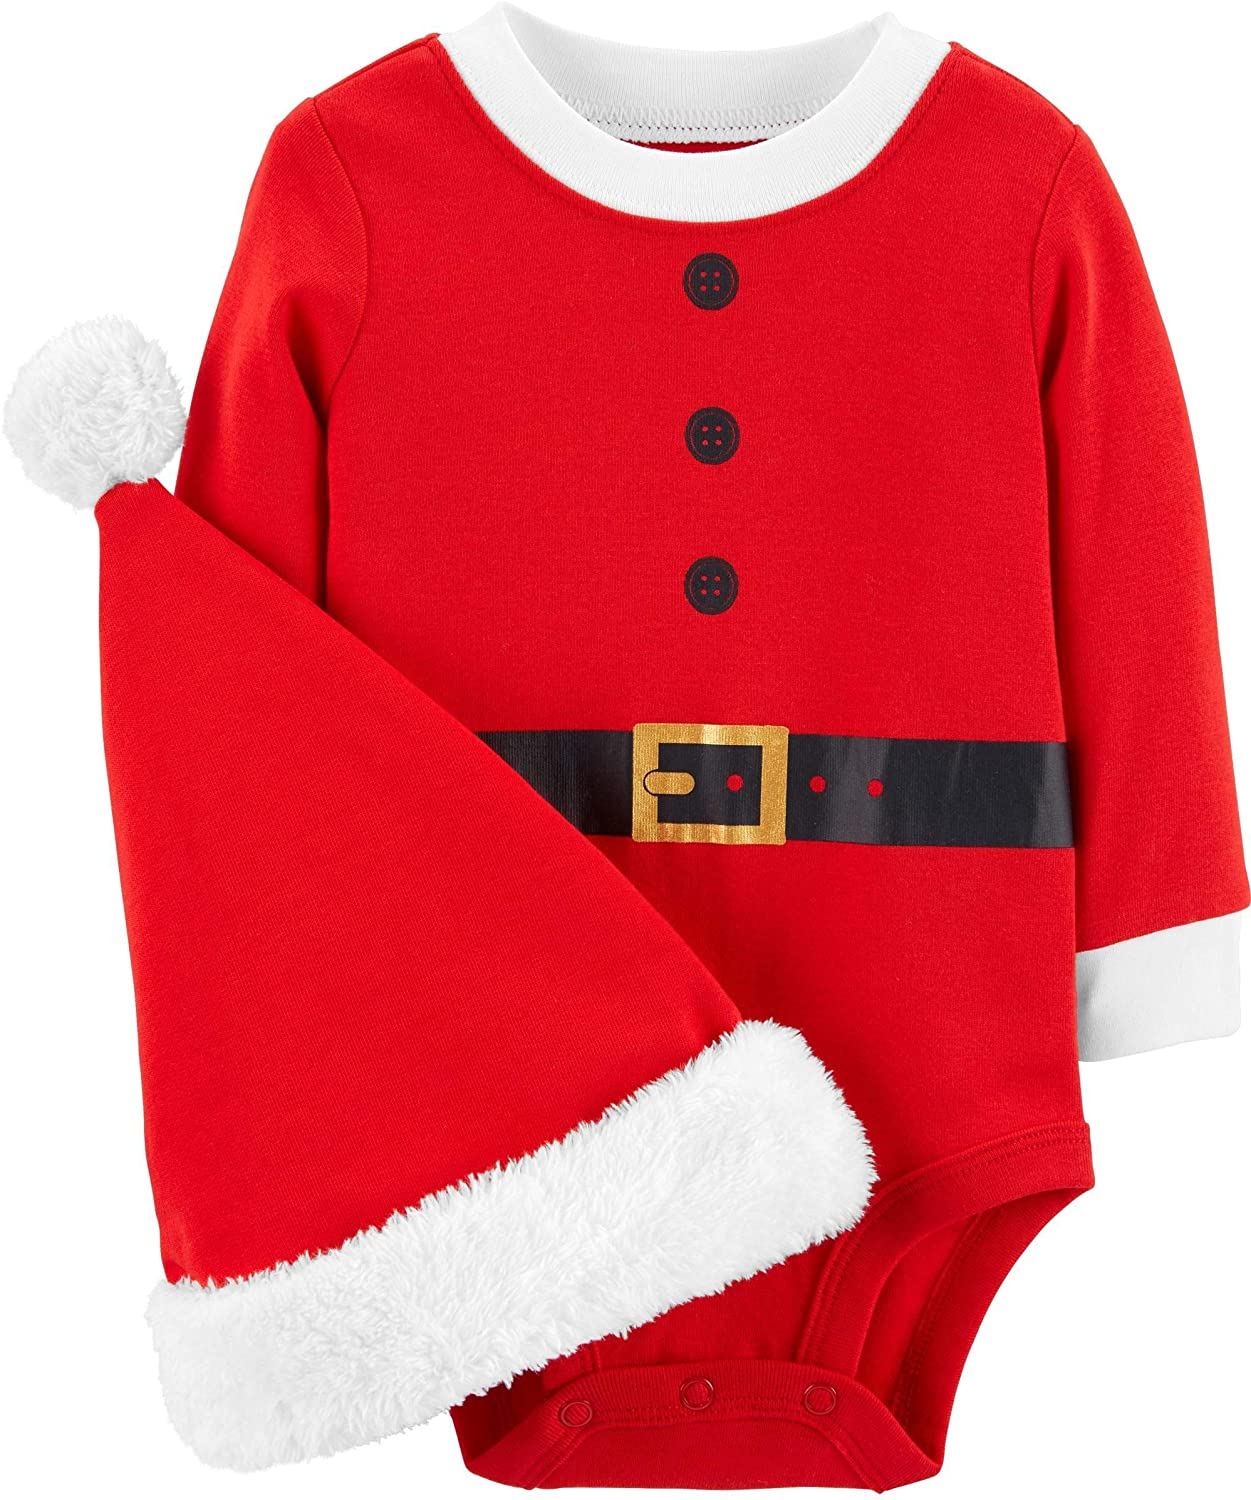 Carter's Unisex Baby 2-Piece Christmas Bodysuit & Hat Set